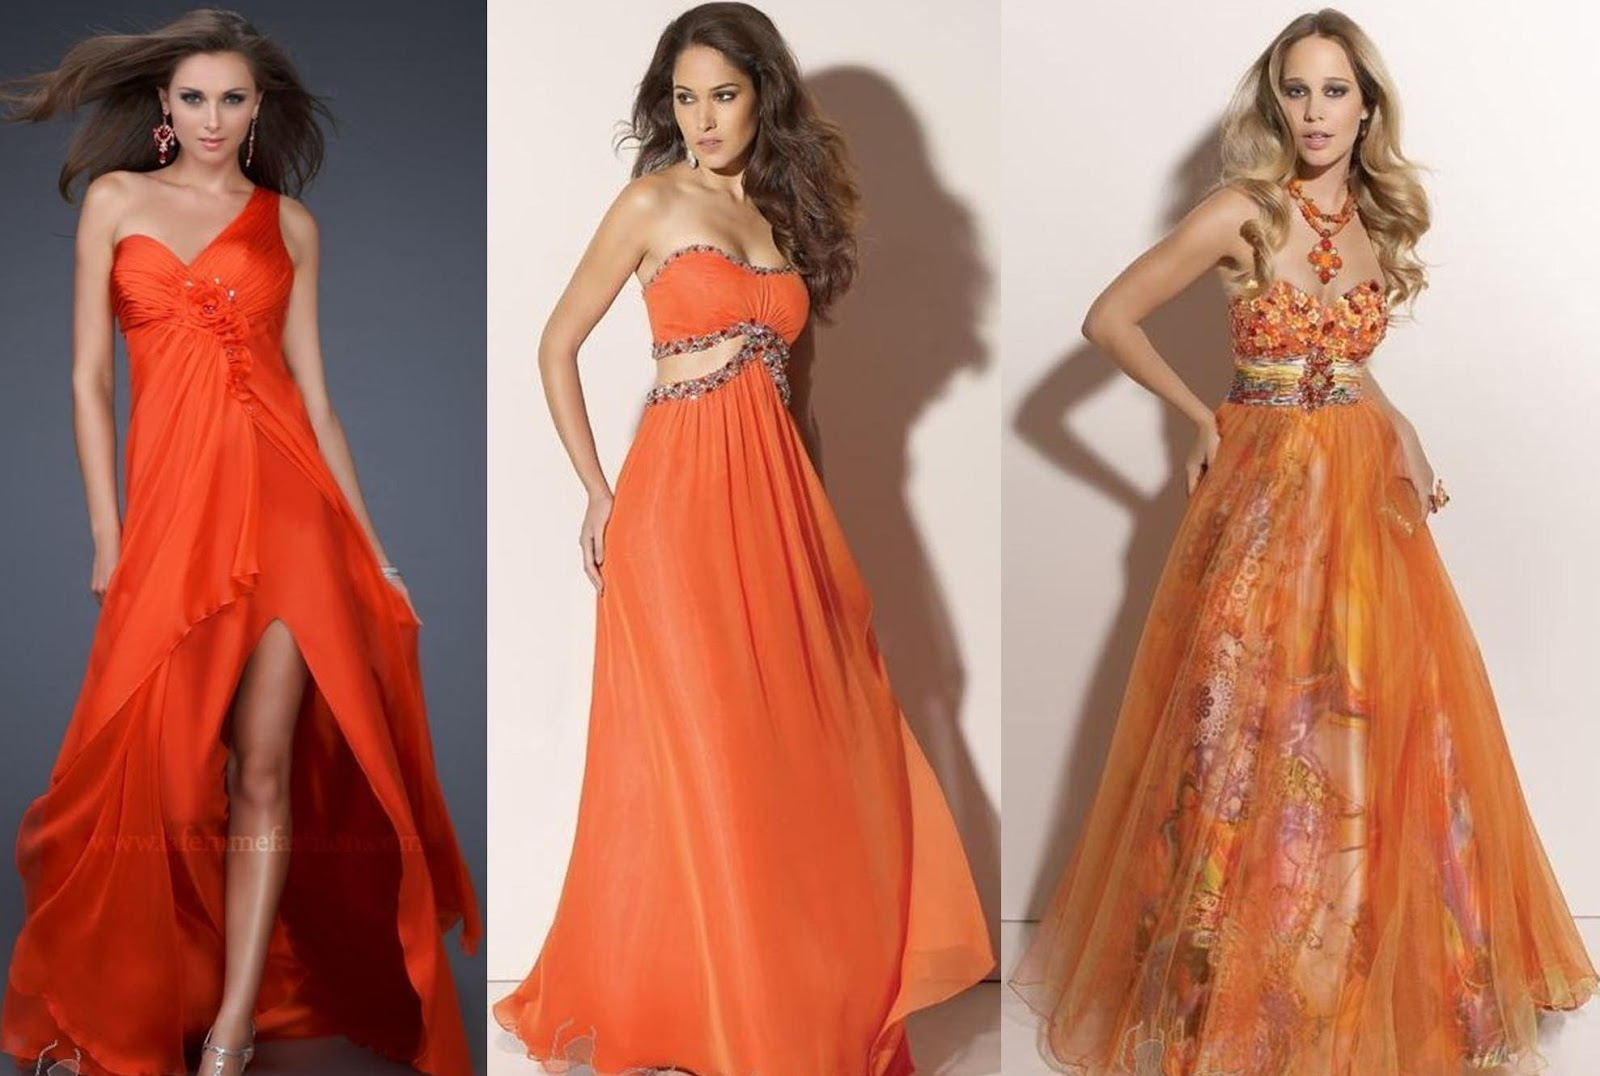 CHIN LENGTH HAIRSTYLES 2012: ORANGE PROM DRESSES CAN GIVE YOU A BOLD ...